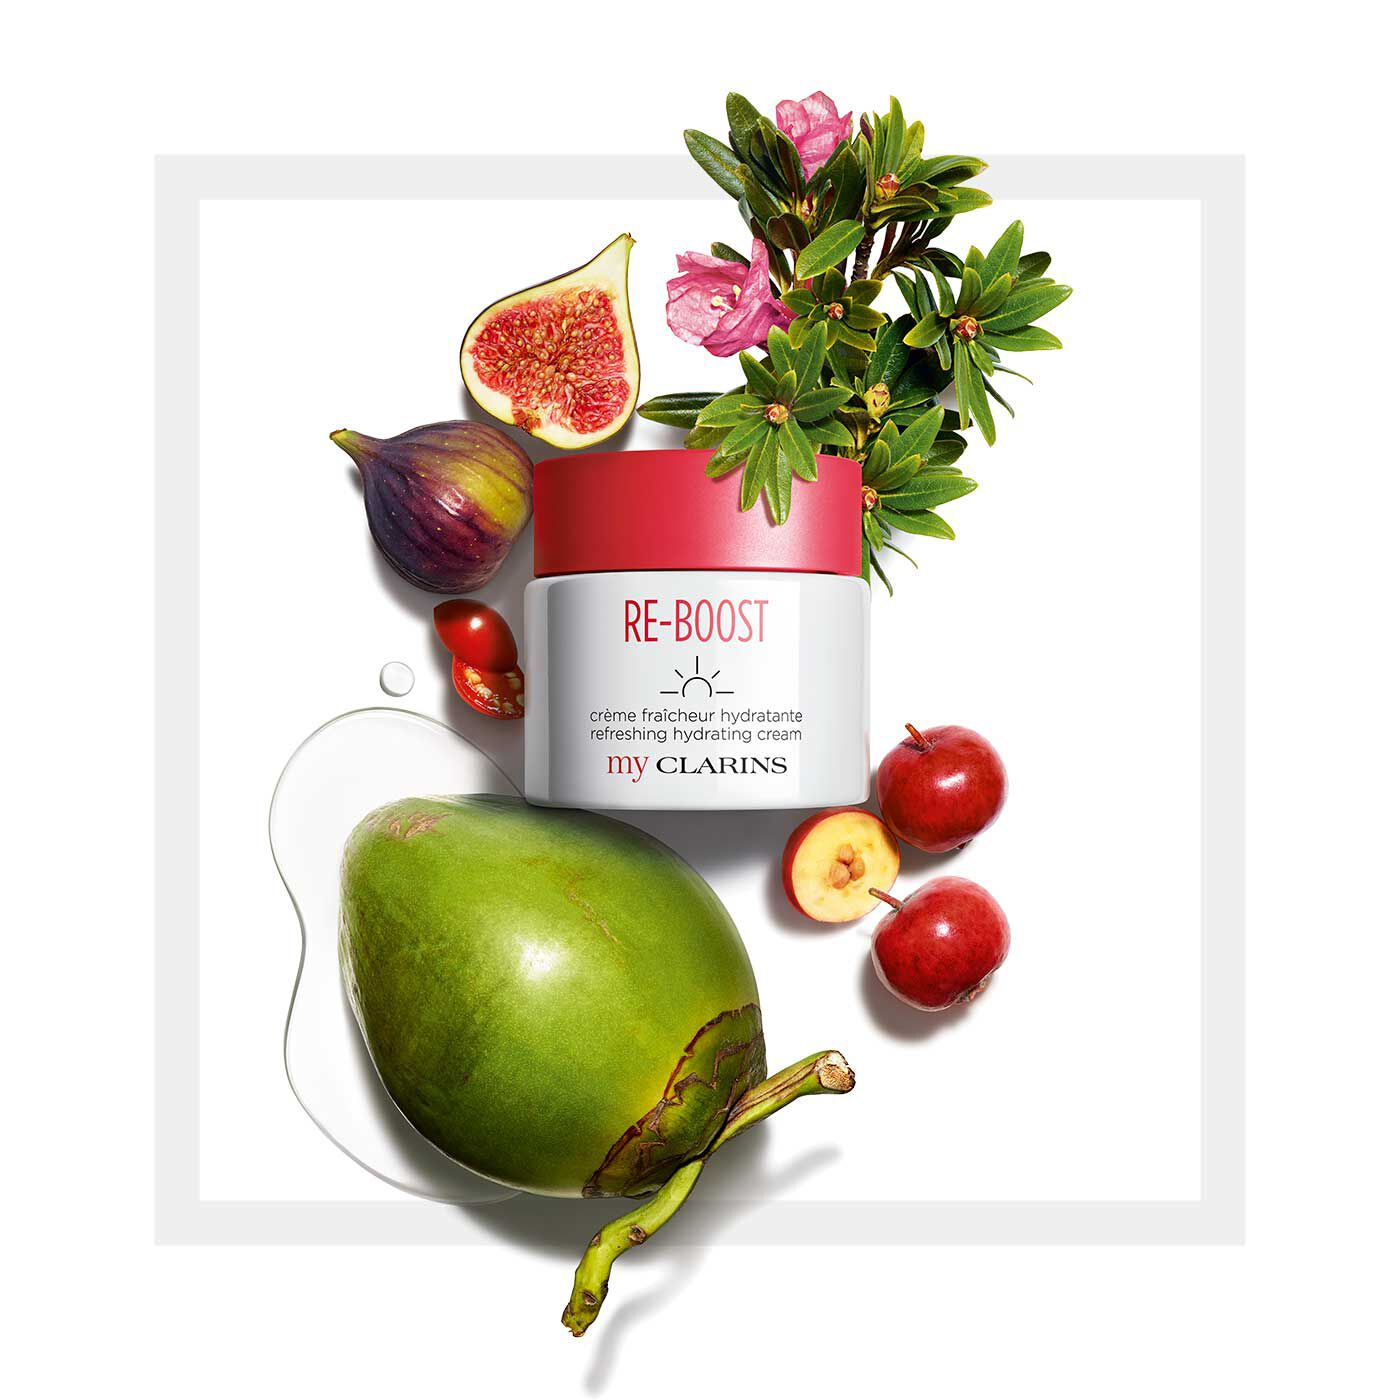 My Clarins RE-BOOST Hydrating Cream - All skin types